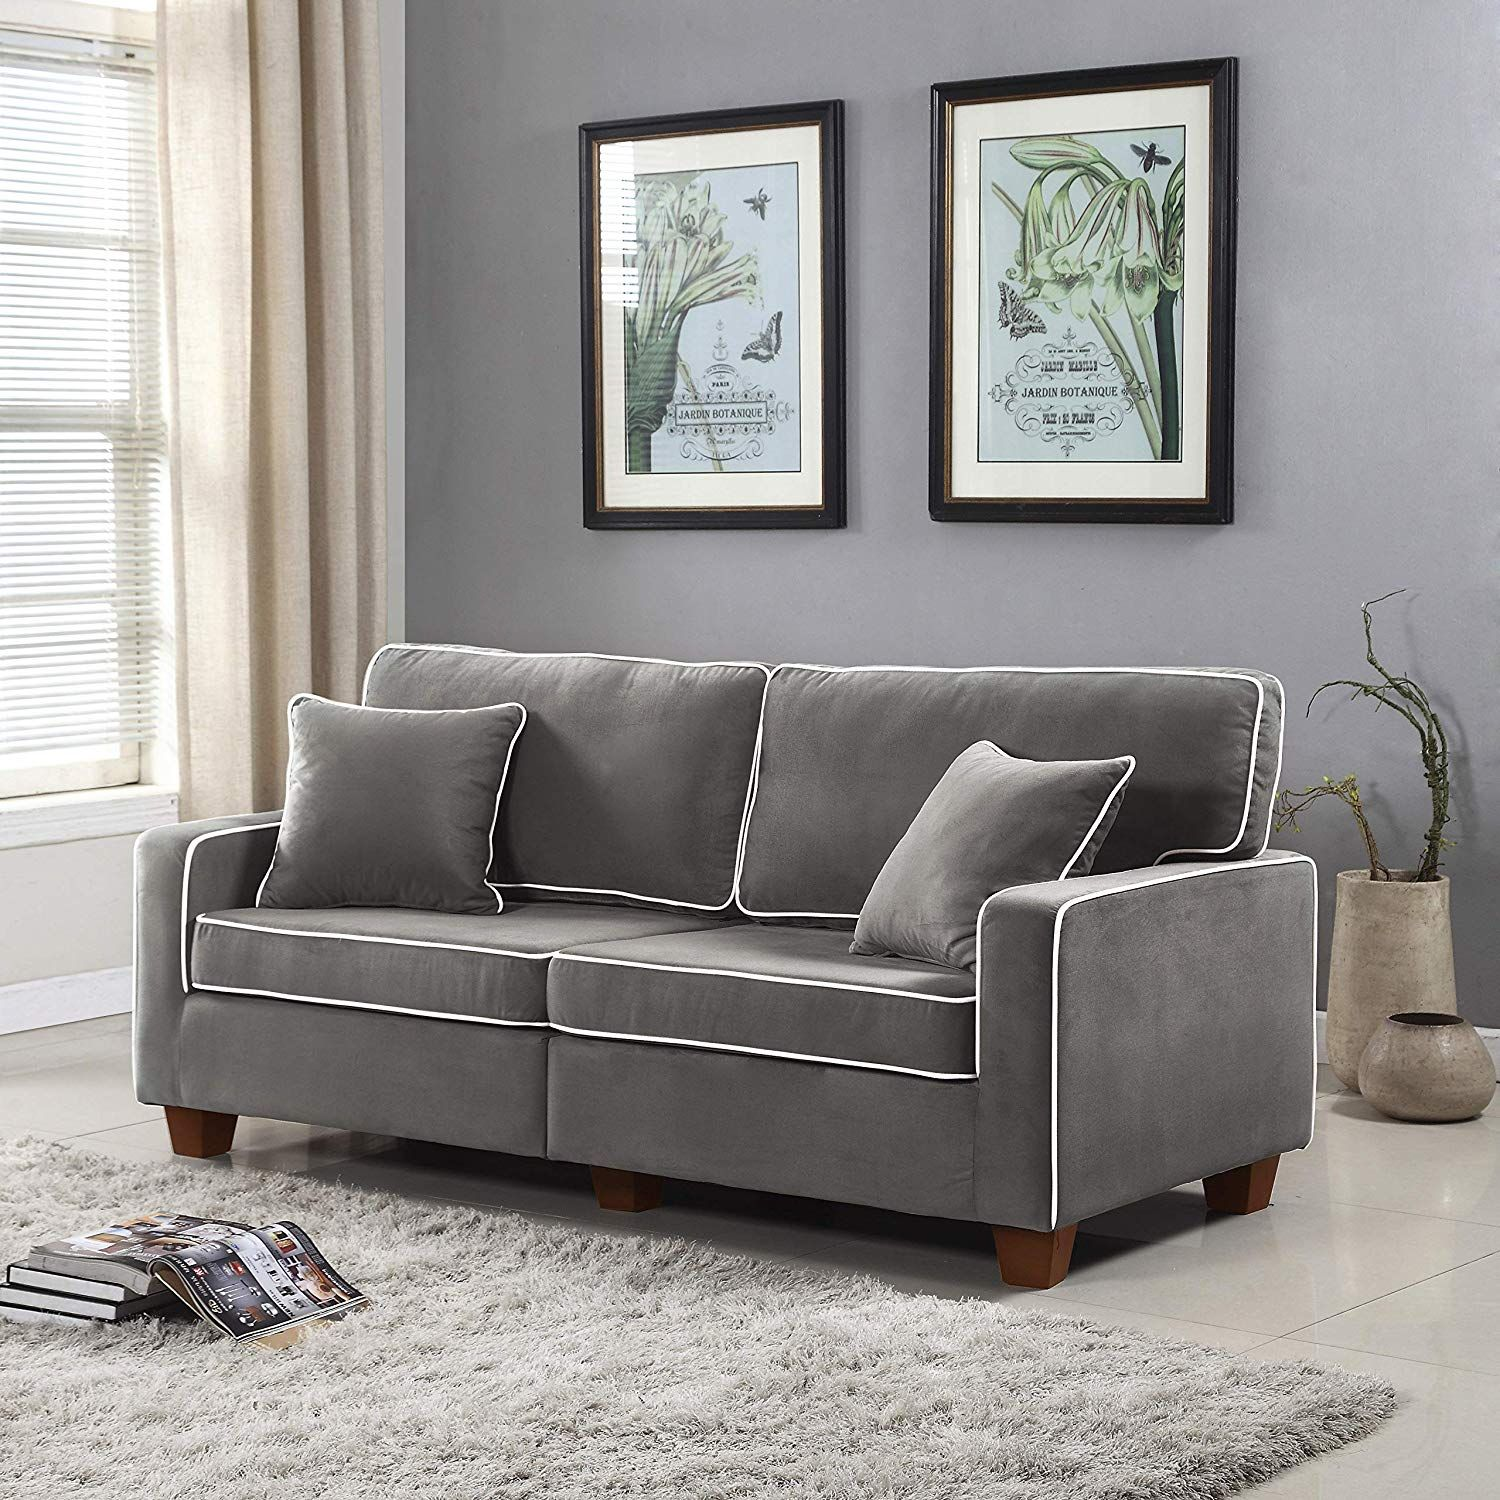 25 High Quality Living Room Loveseat Under 300 Buyer S Guide Love Seat Living Room Sofa Living Room Furniture Sale